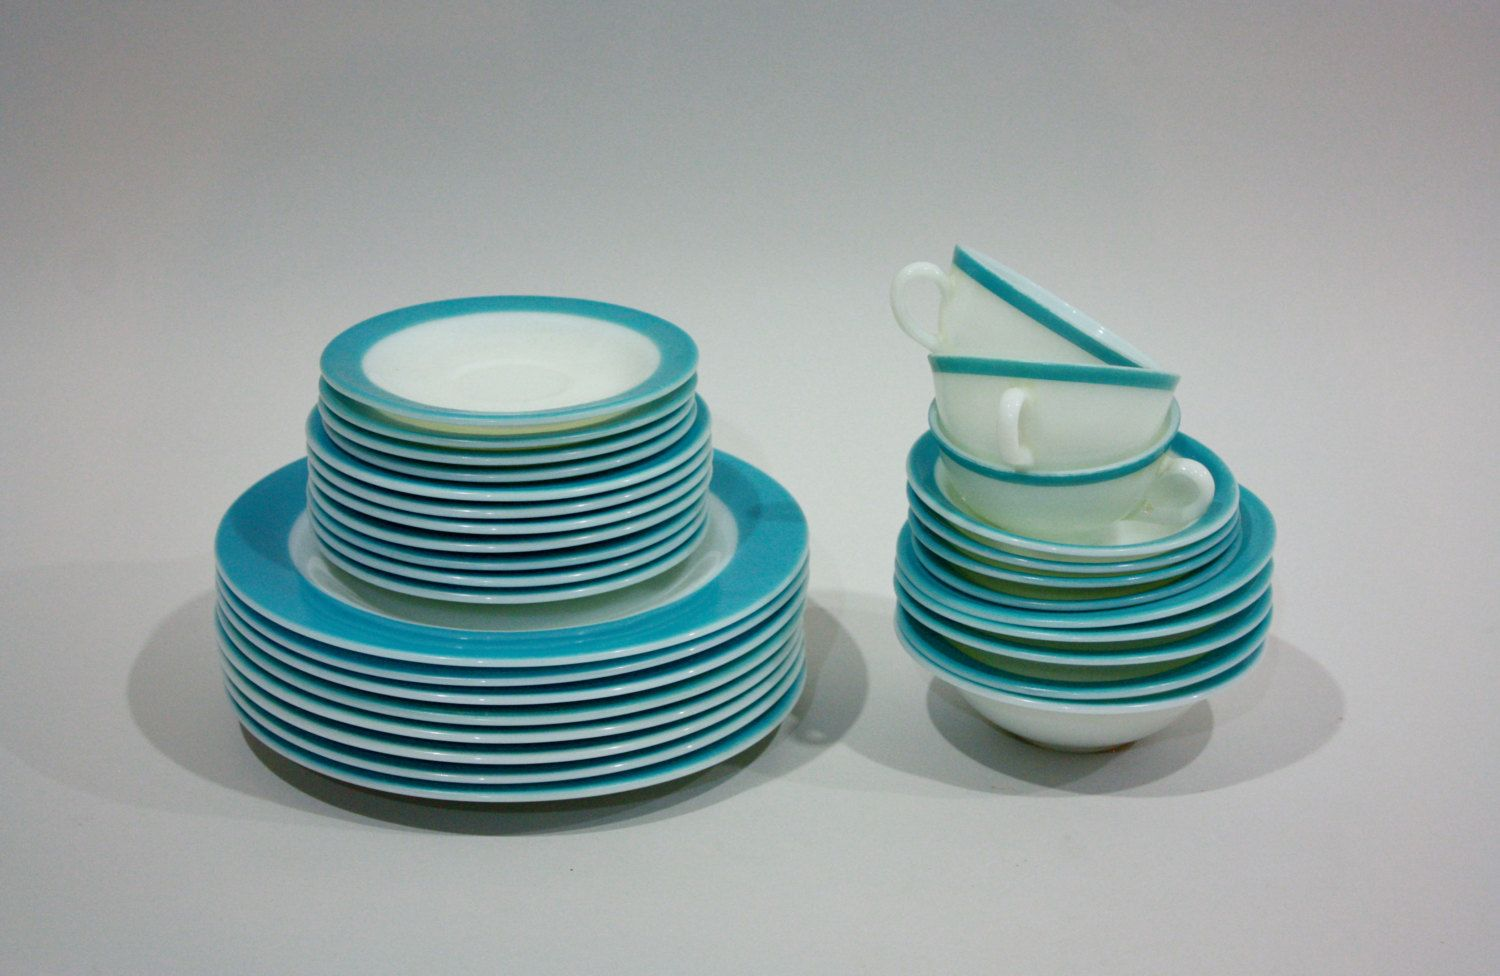 vintage 50s pyrex dinnerware set Aqua 31 pieces by BombshellsandBabes $215.00 & vintage 50s pyrex dinnerware set Aqua 31 pieces by ...